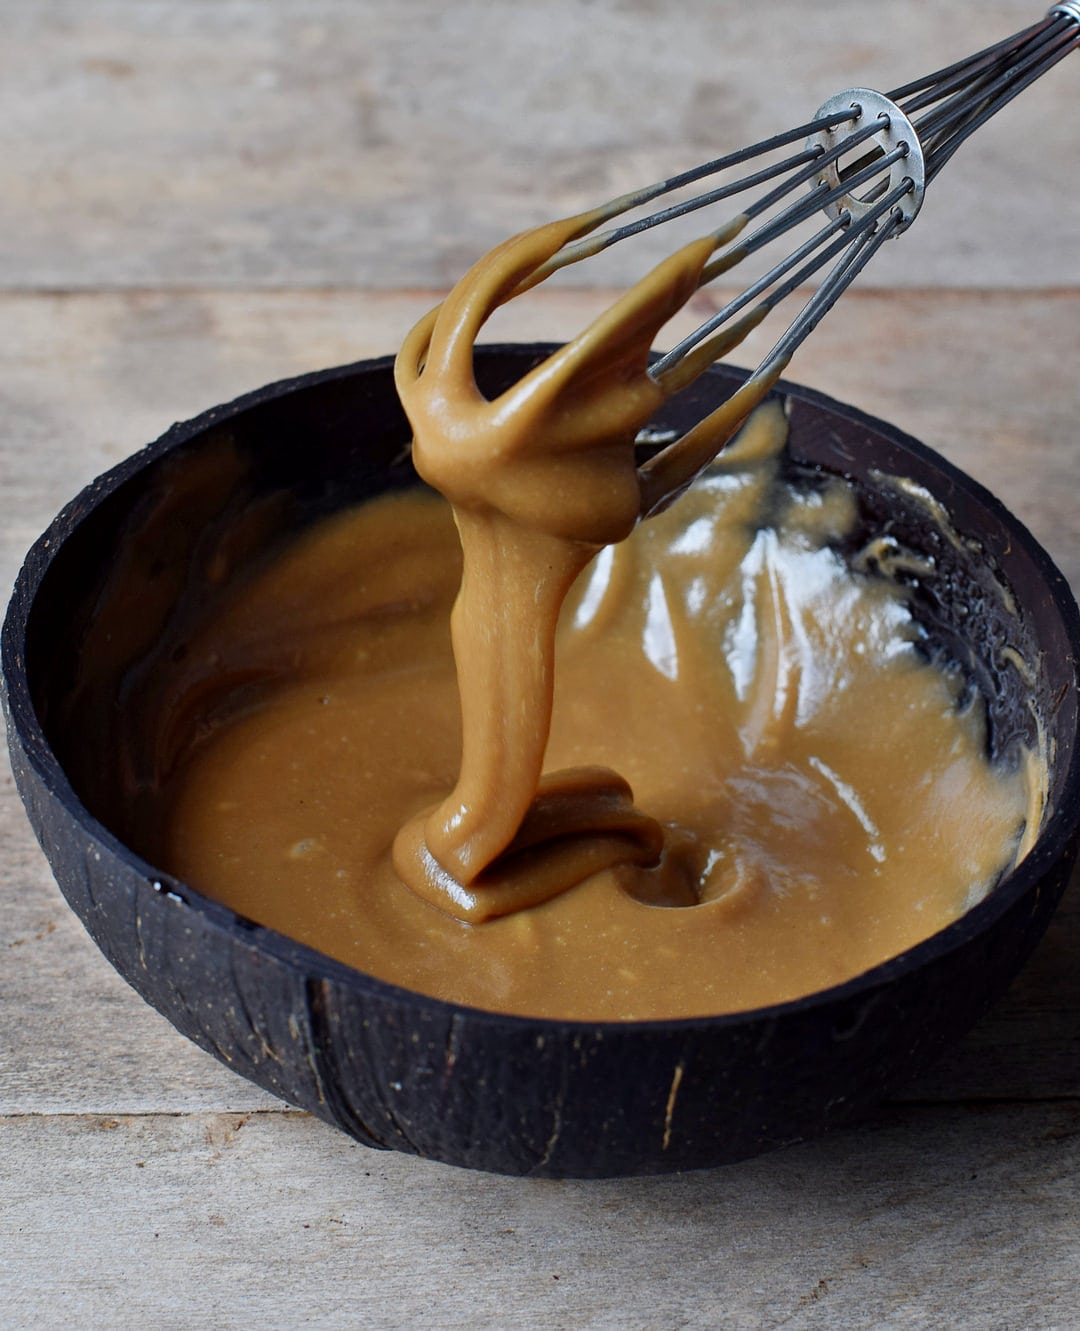 Homemade caramel for caramel chocolate pancakes